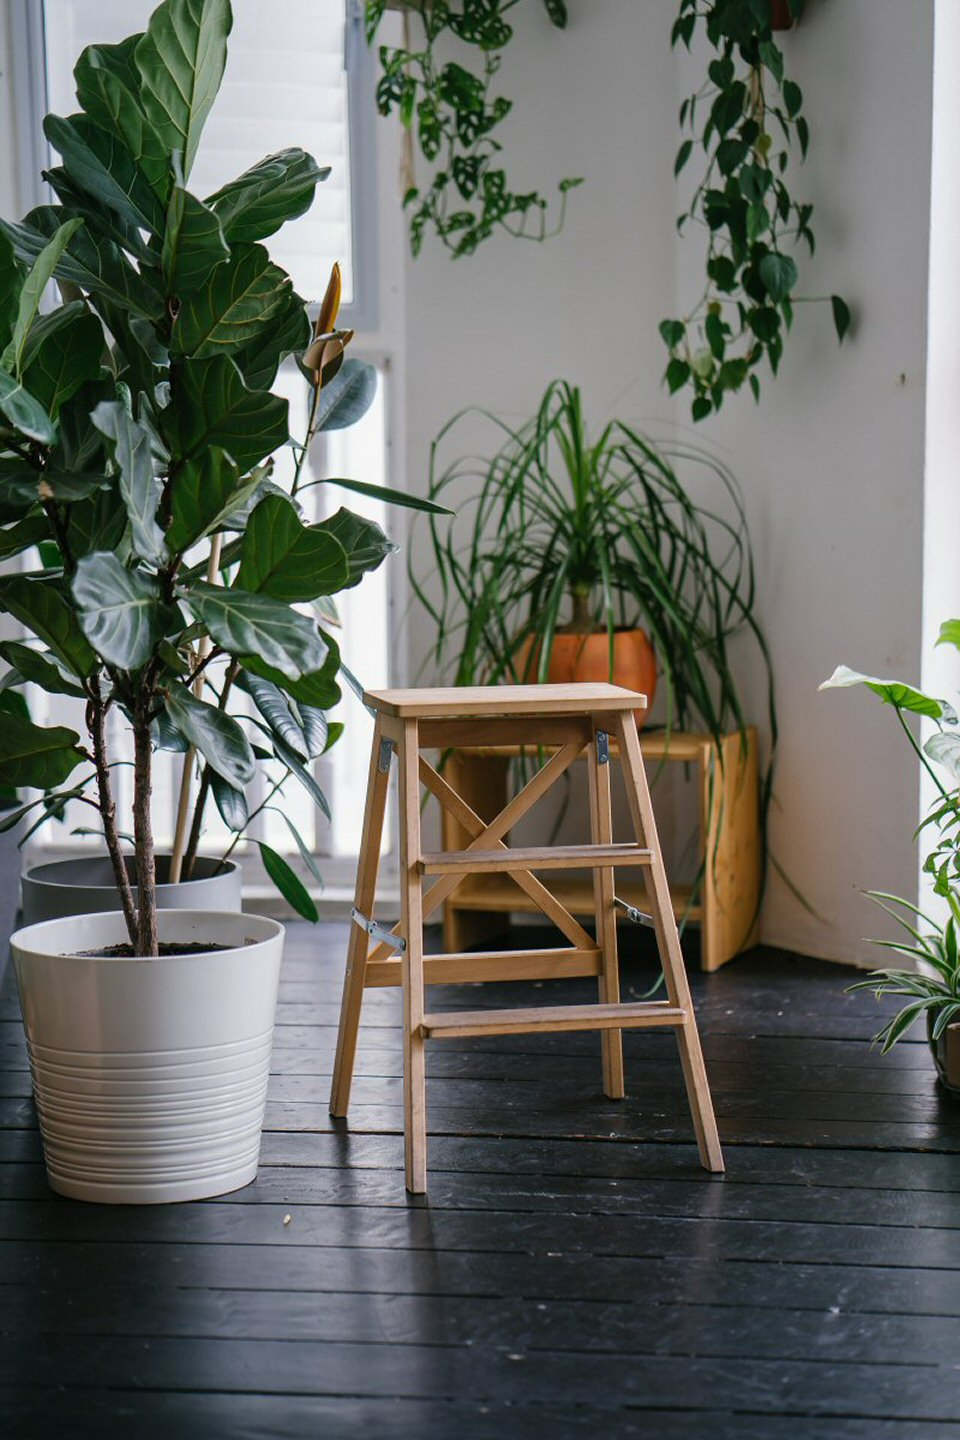 Bring Nature Indoors with Real or Artificial Houseplants